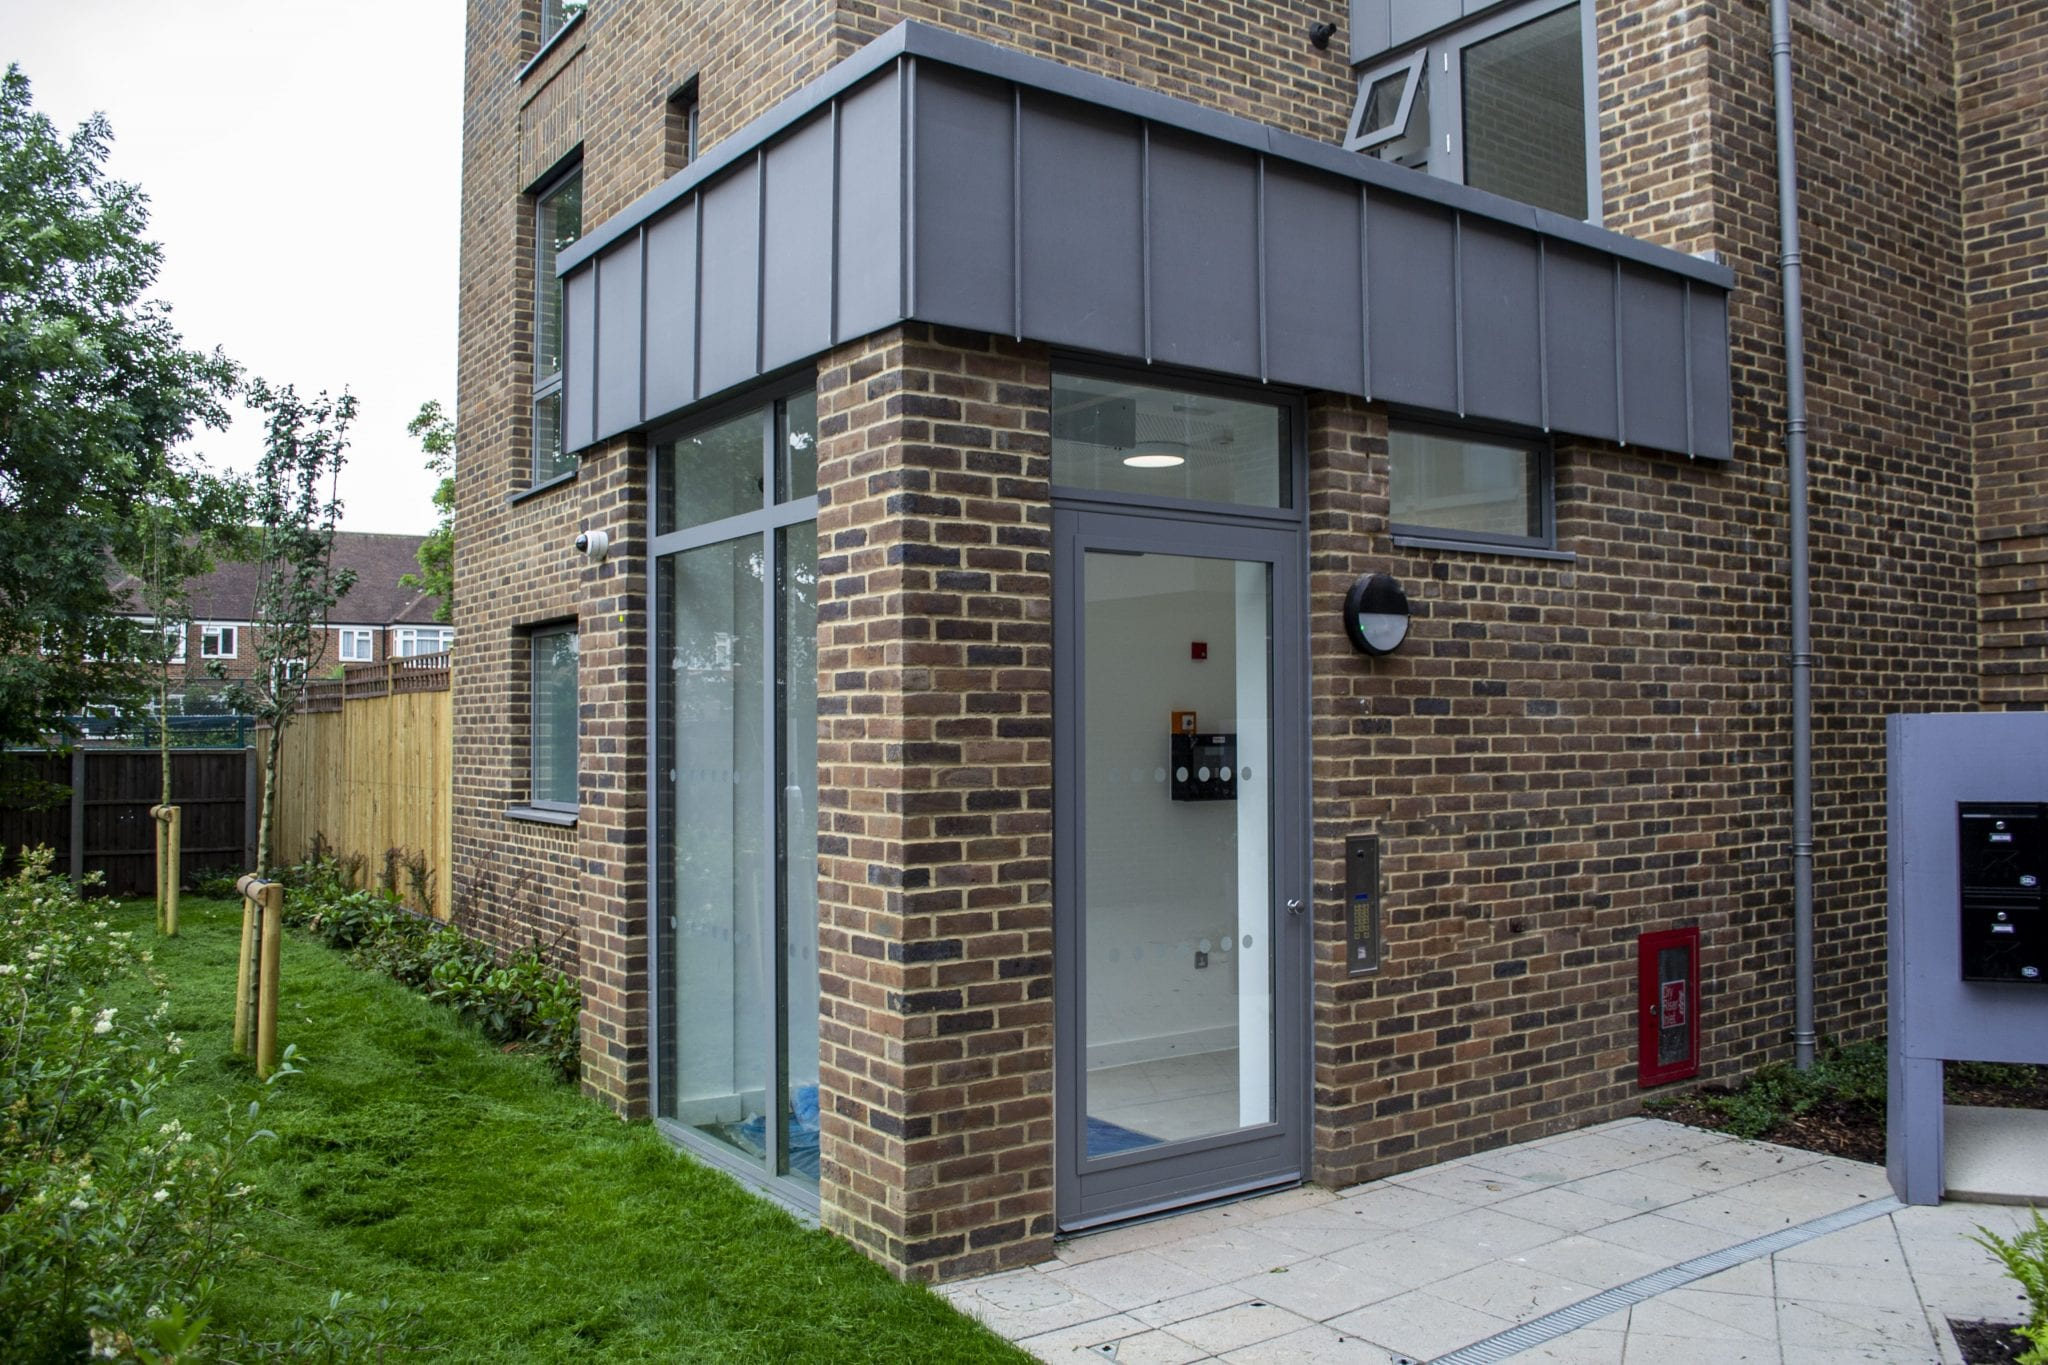 Fully Glazed Warrior Communal Entrance Door & Screen on a Communal Residential Building